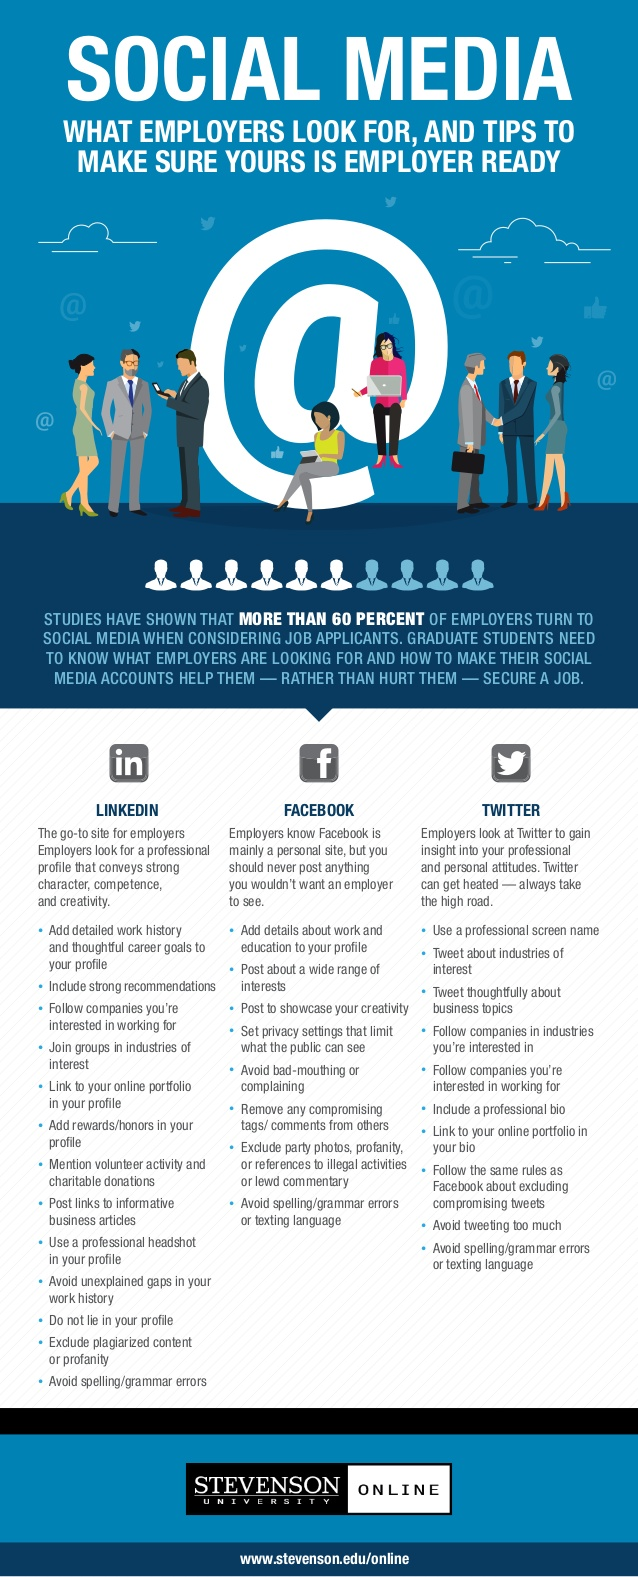 Social Media Do's and Don't - Image 1